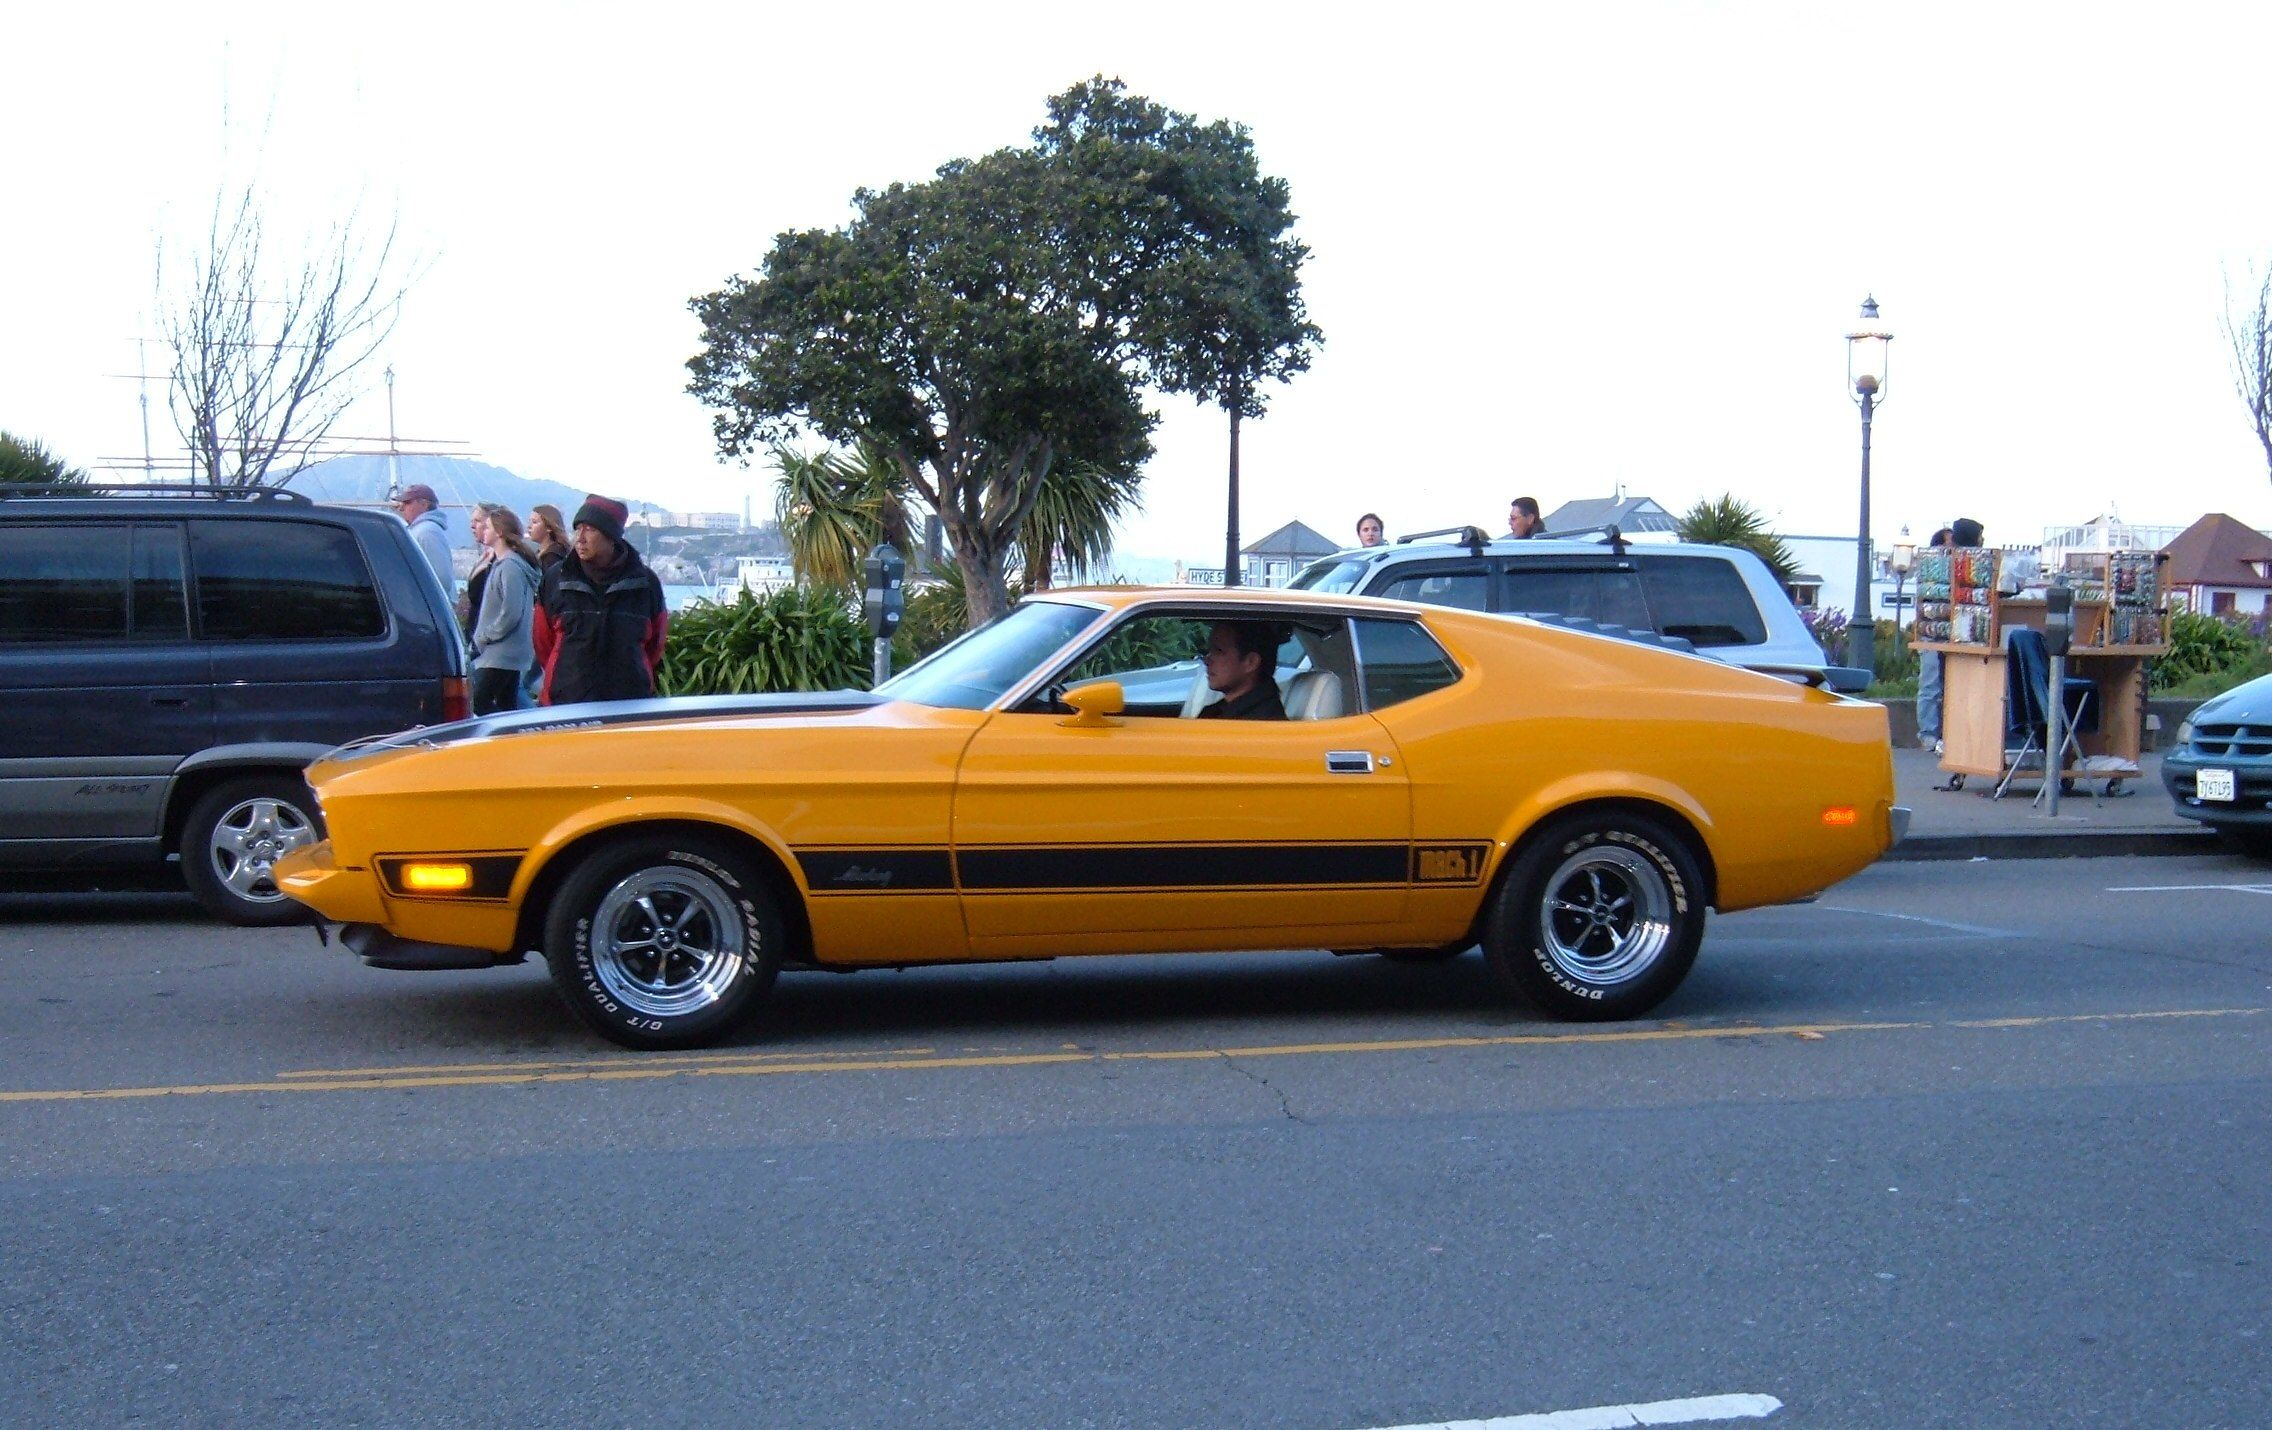 ford mustang pictures - Google Search